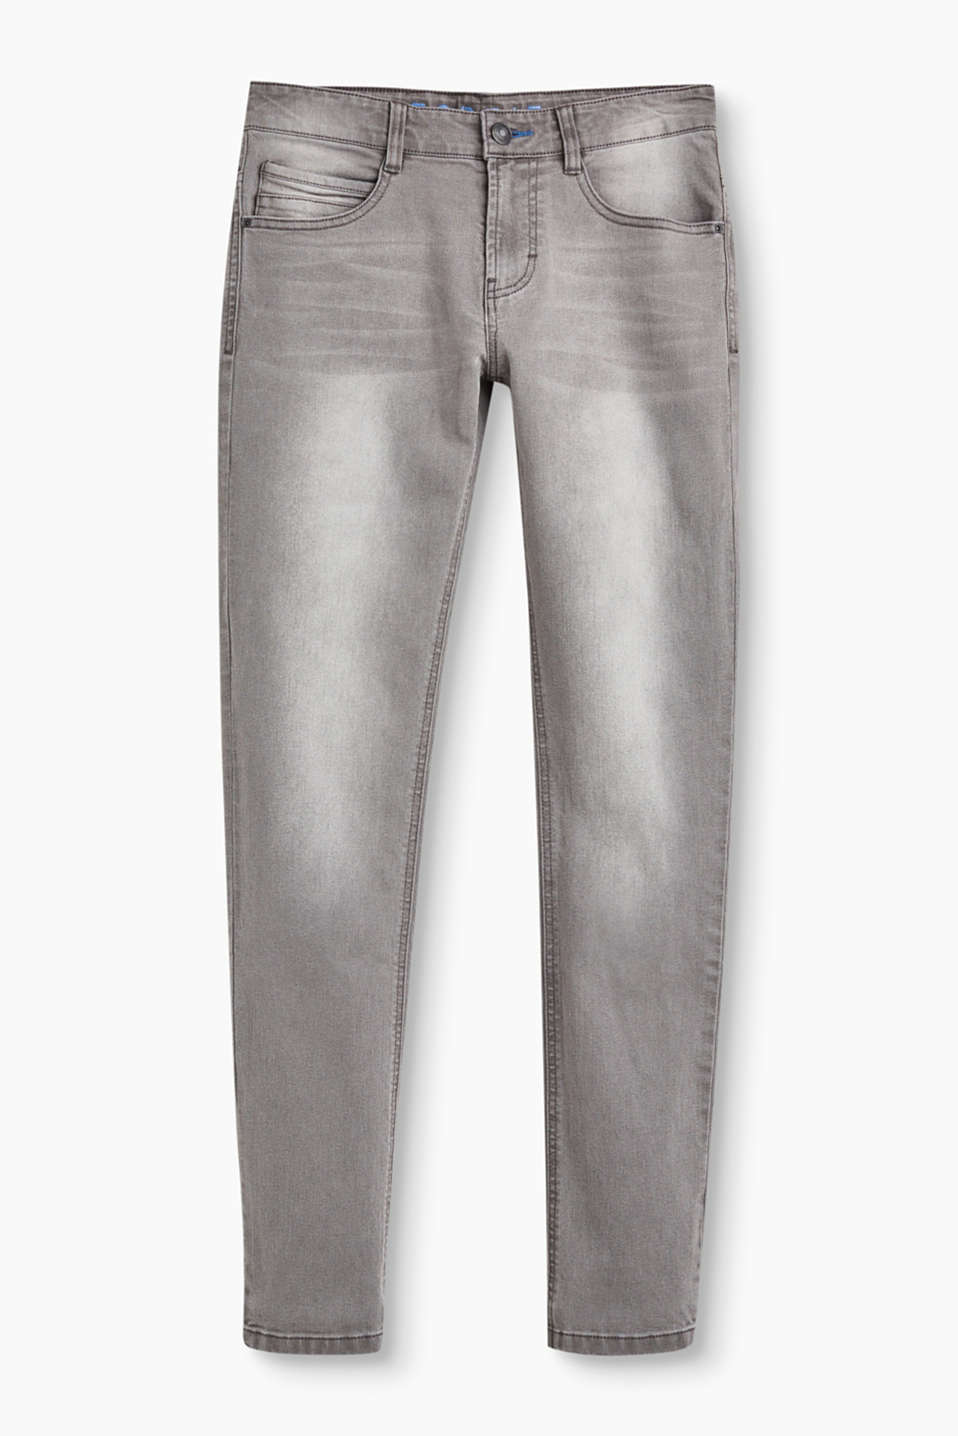 Esprit - Grey stretch jeans, adjustable waist